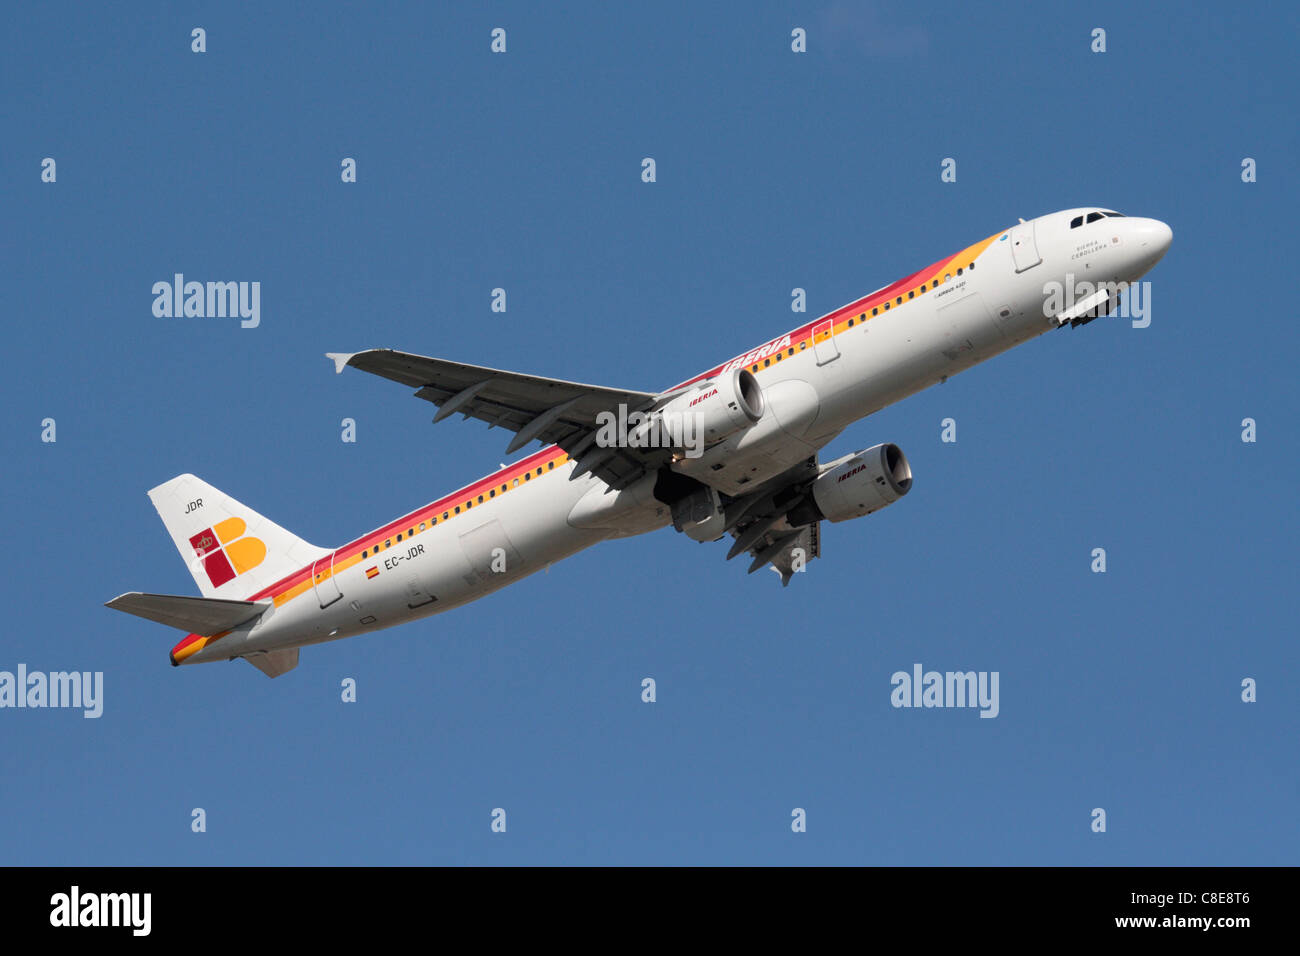 Iberia Airbus A321 passenger jet airliner climbing on takeoff against a clear blue sky - Stock Image